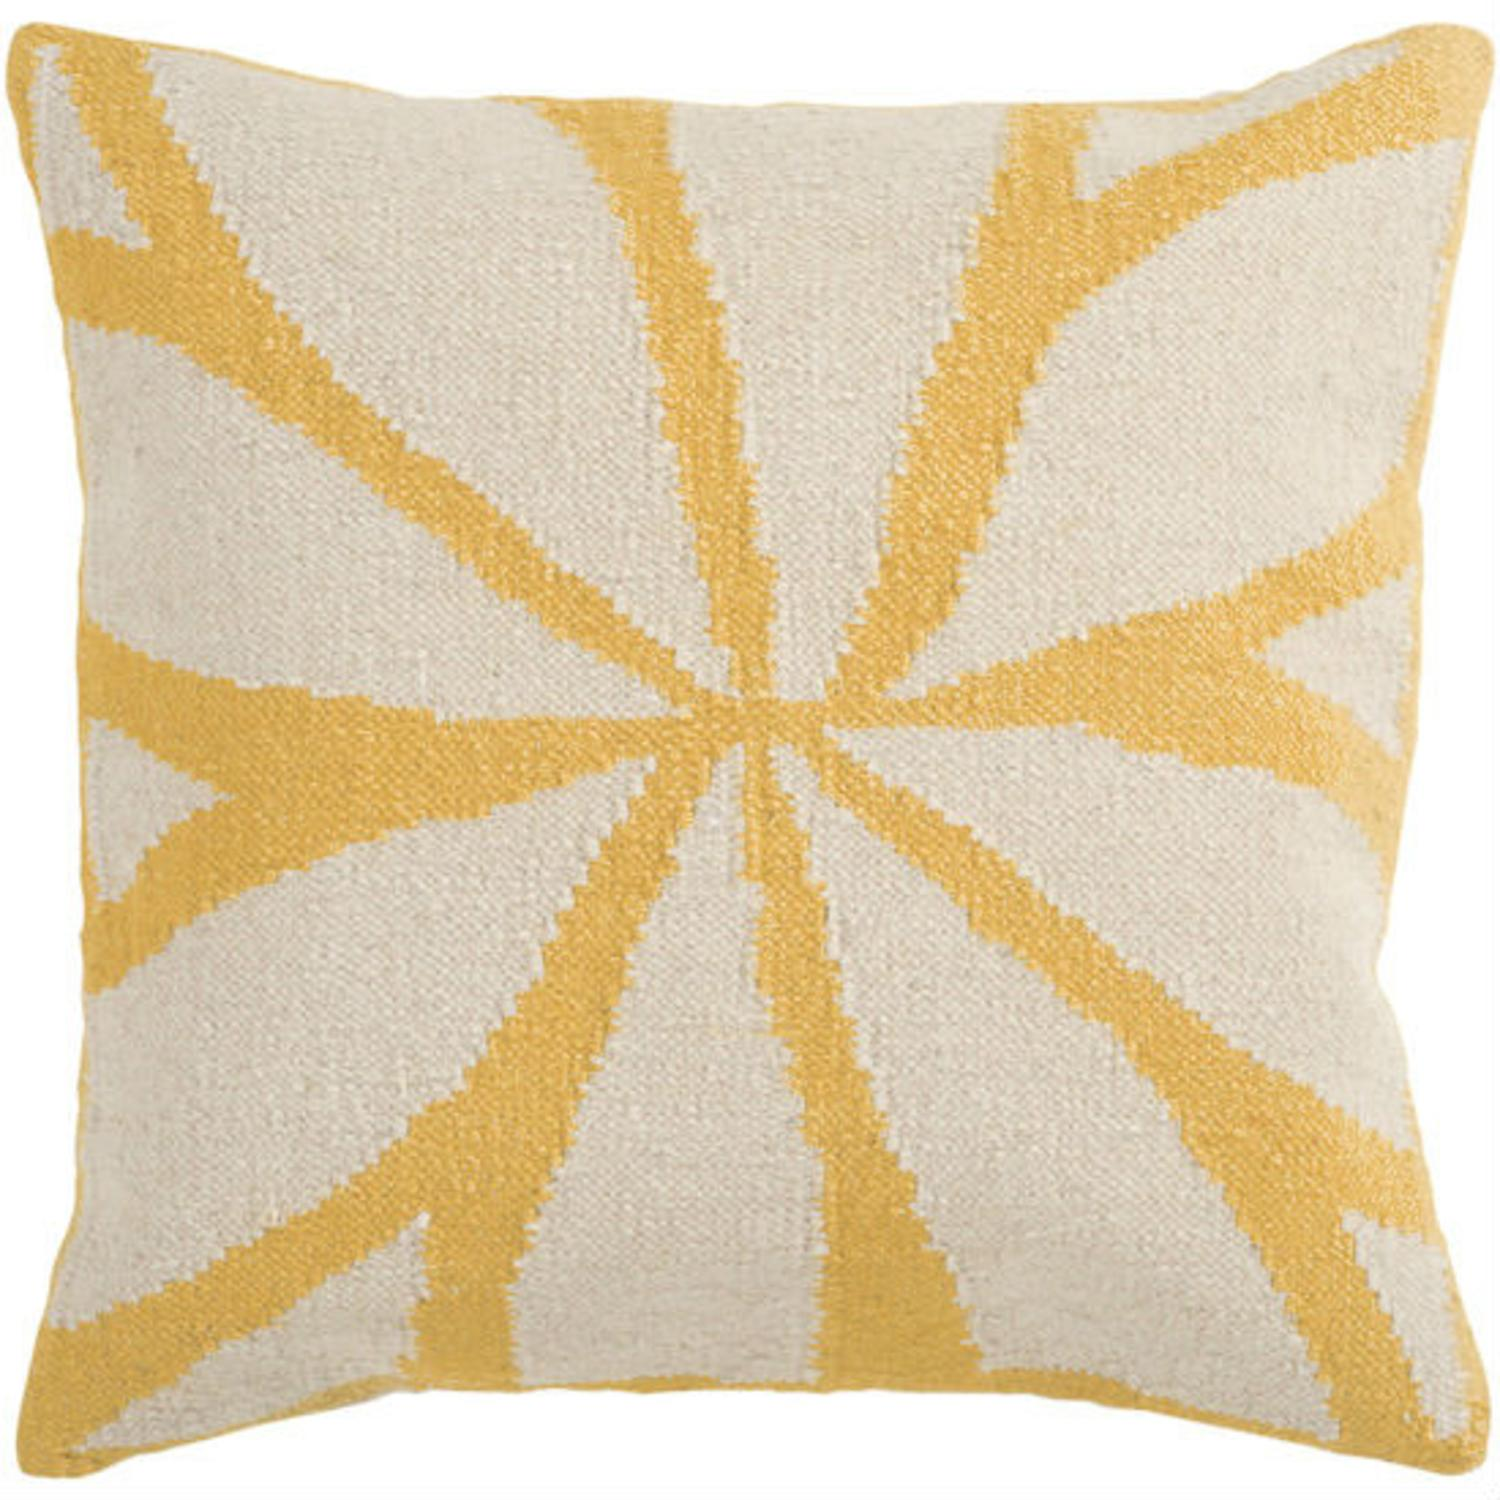 """18"""" Golden Yellow and Ivory Asterid Decorative Throw Pillow"""